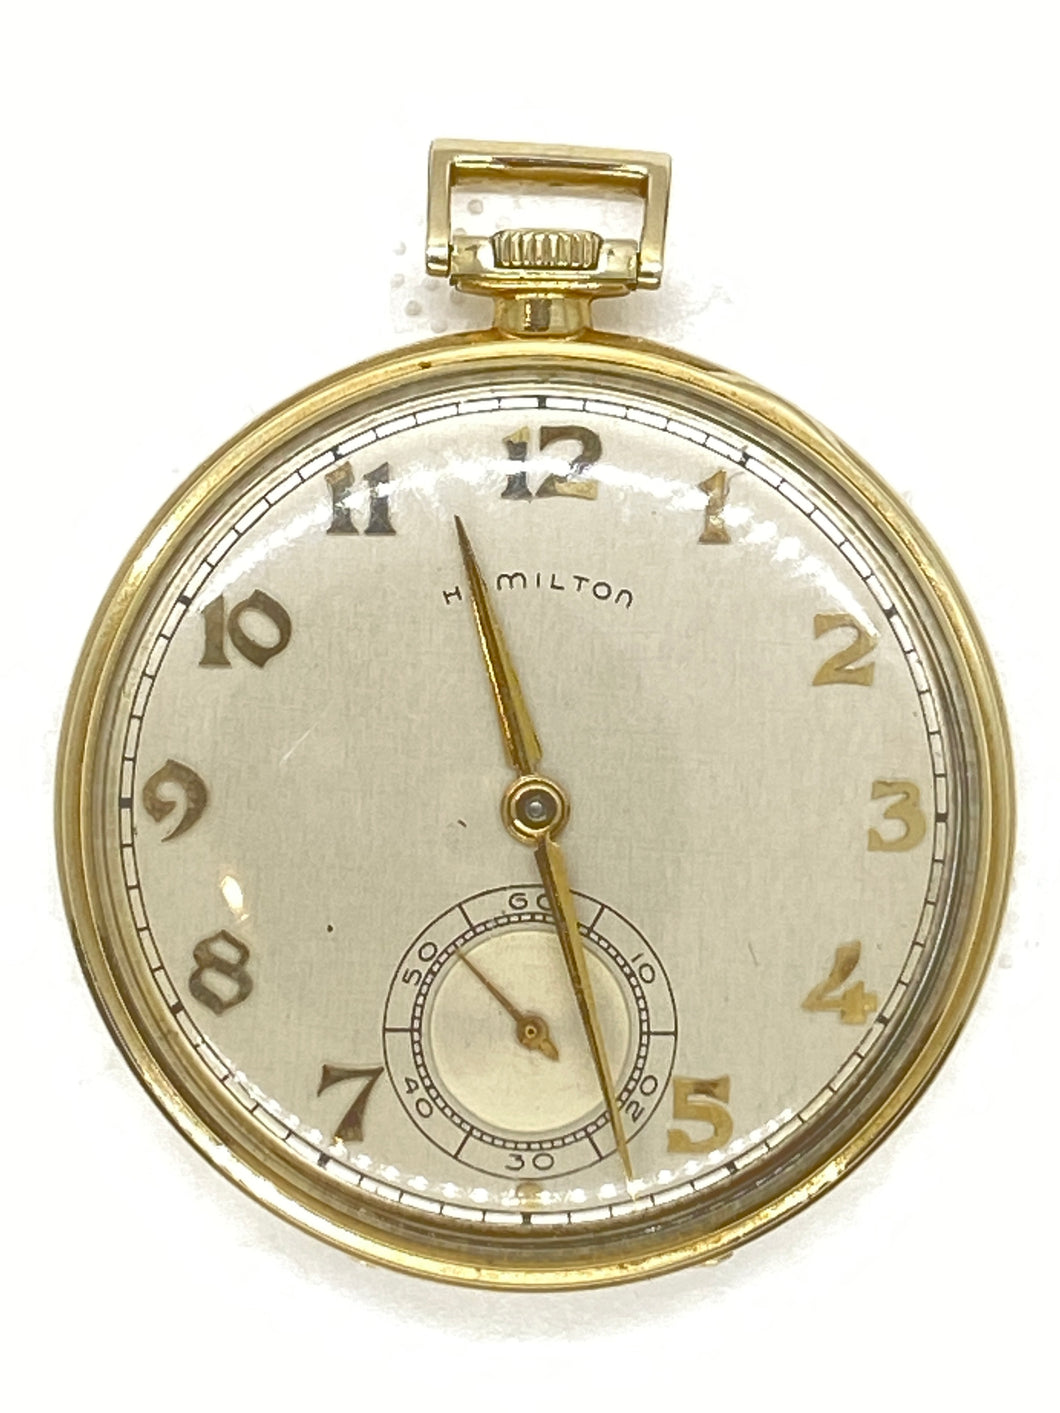 1950-51 Hamilton 921 21J 10S GF MDL-1 Open Face Pocket Watch Greyhound Bus Gift